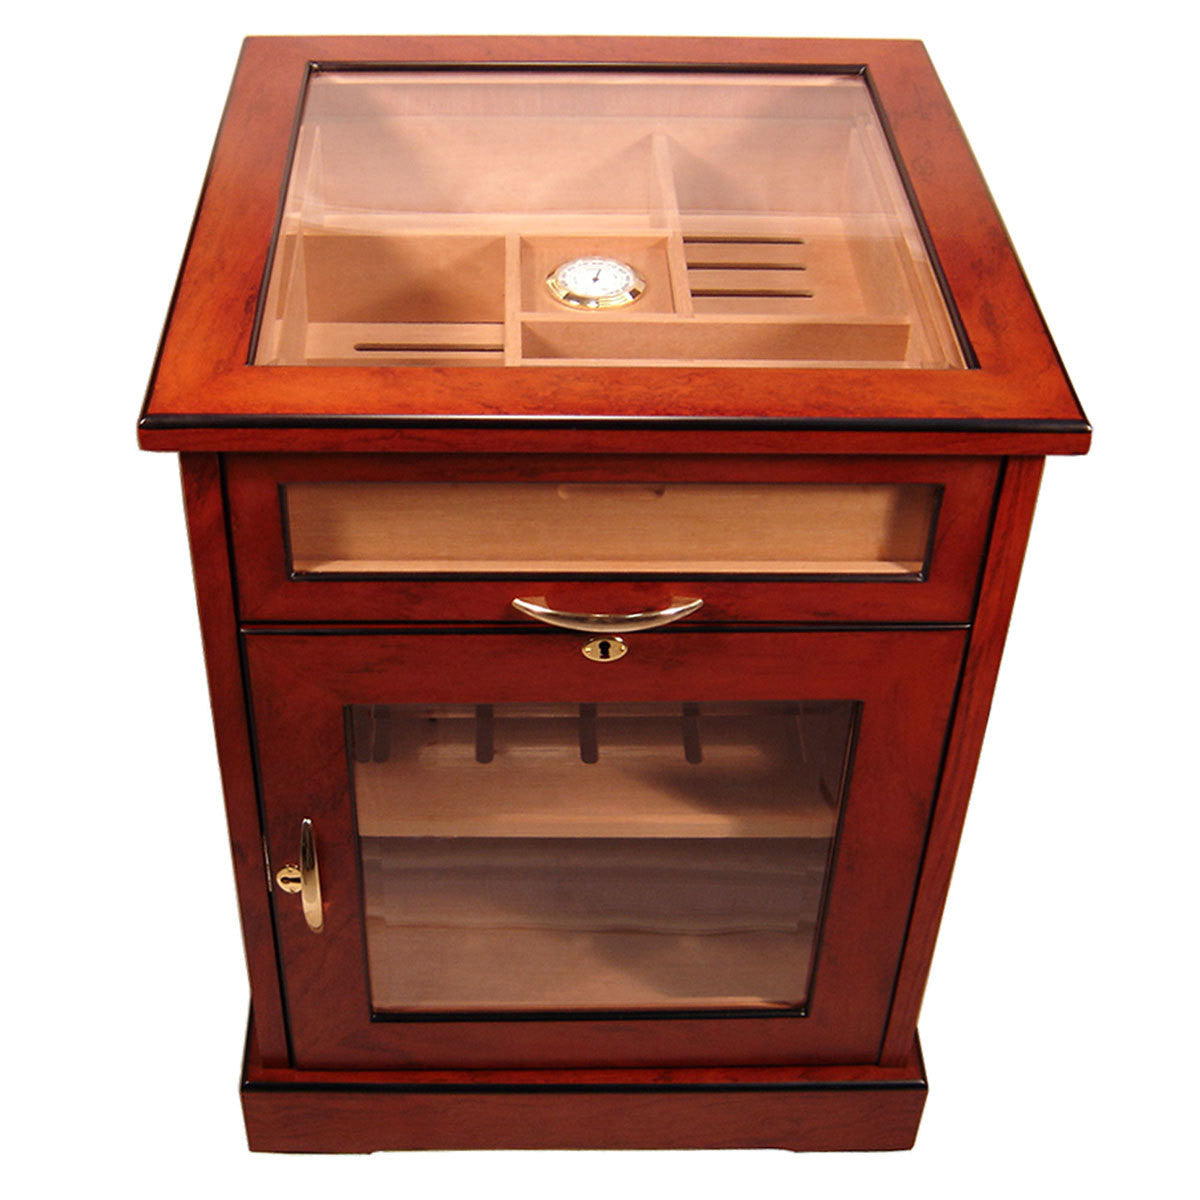 Cuban Crafters Cabinet Humidors End Table Humidor for 600 Cigars ...